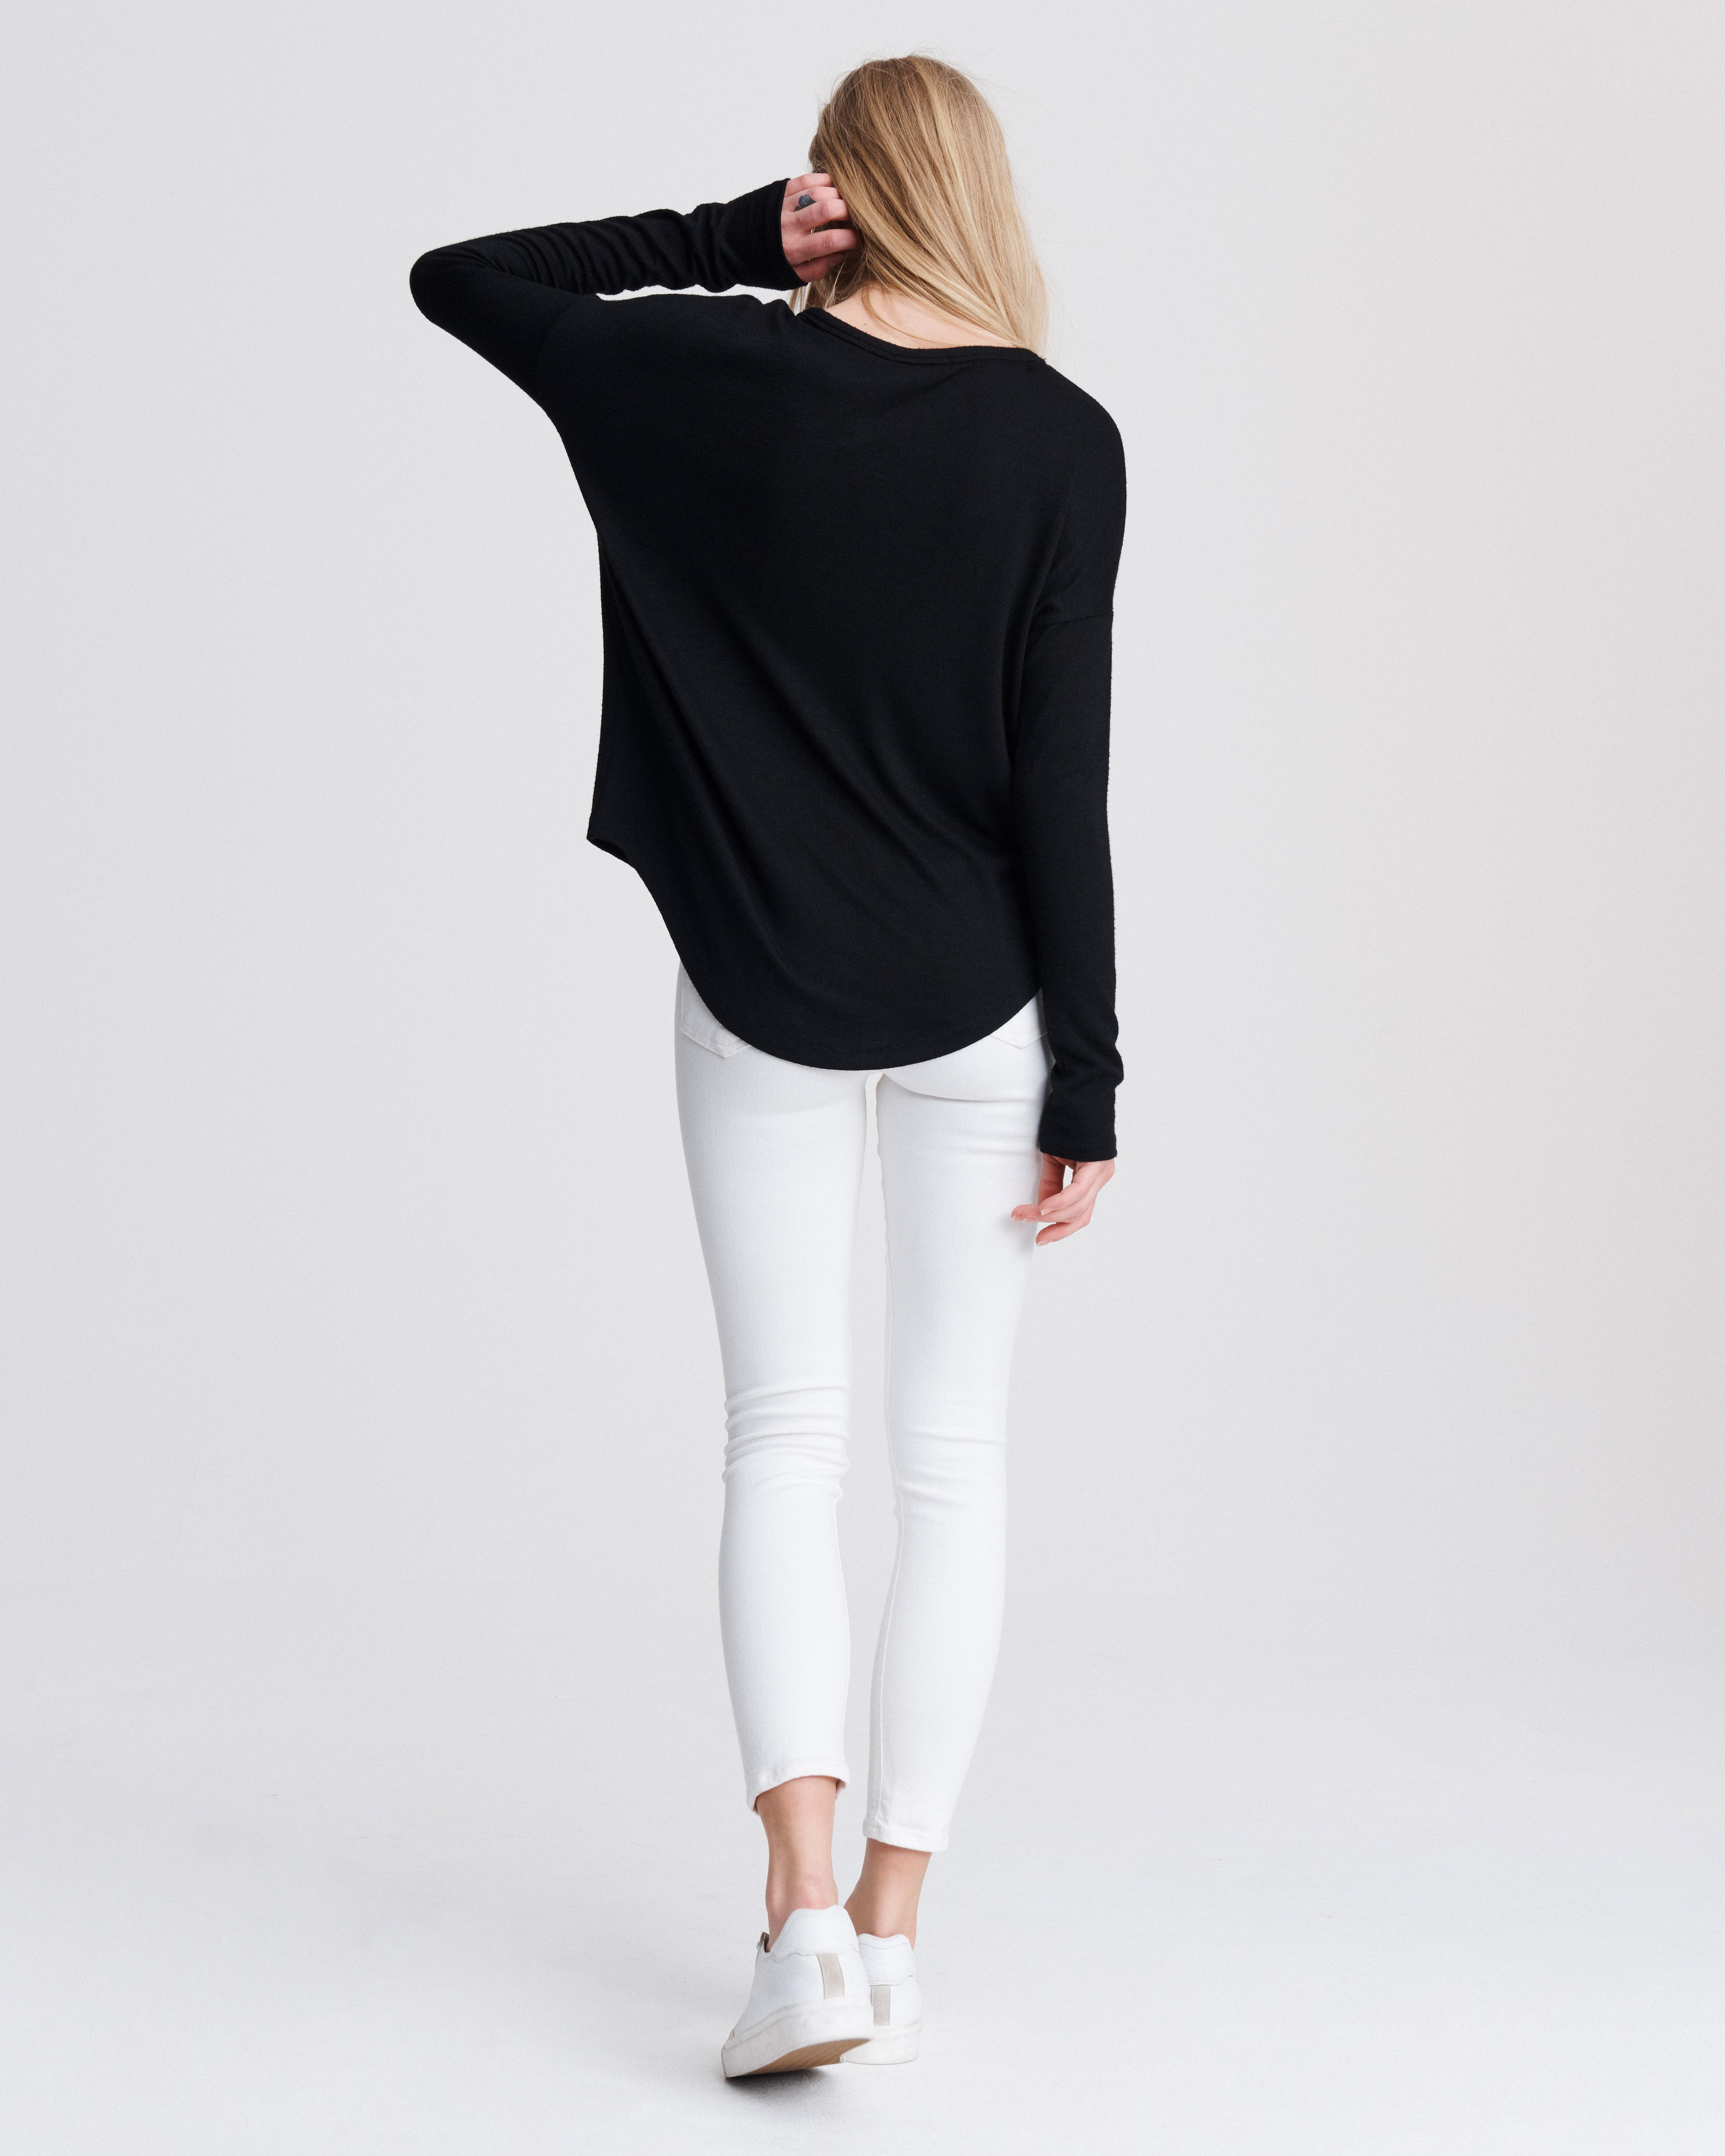 The knit tee 2